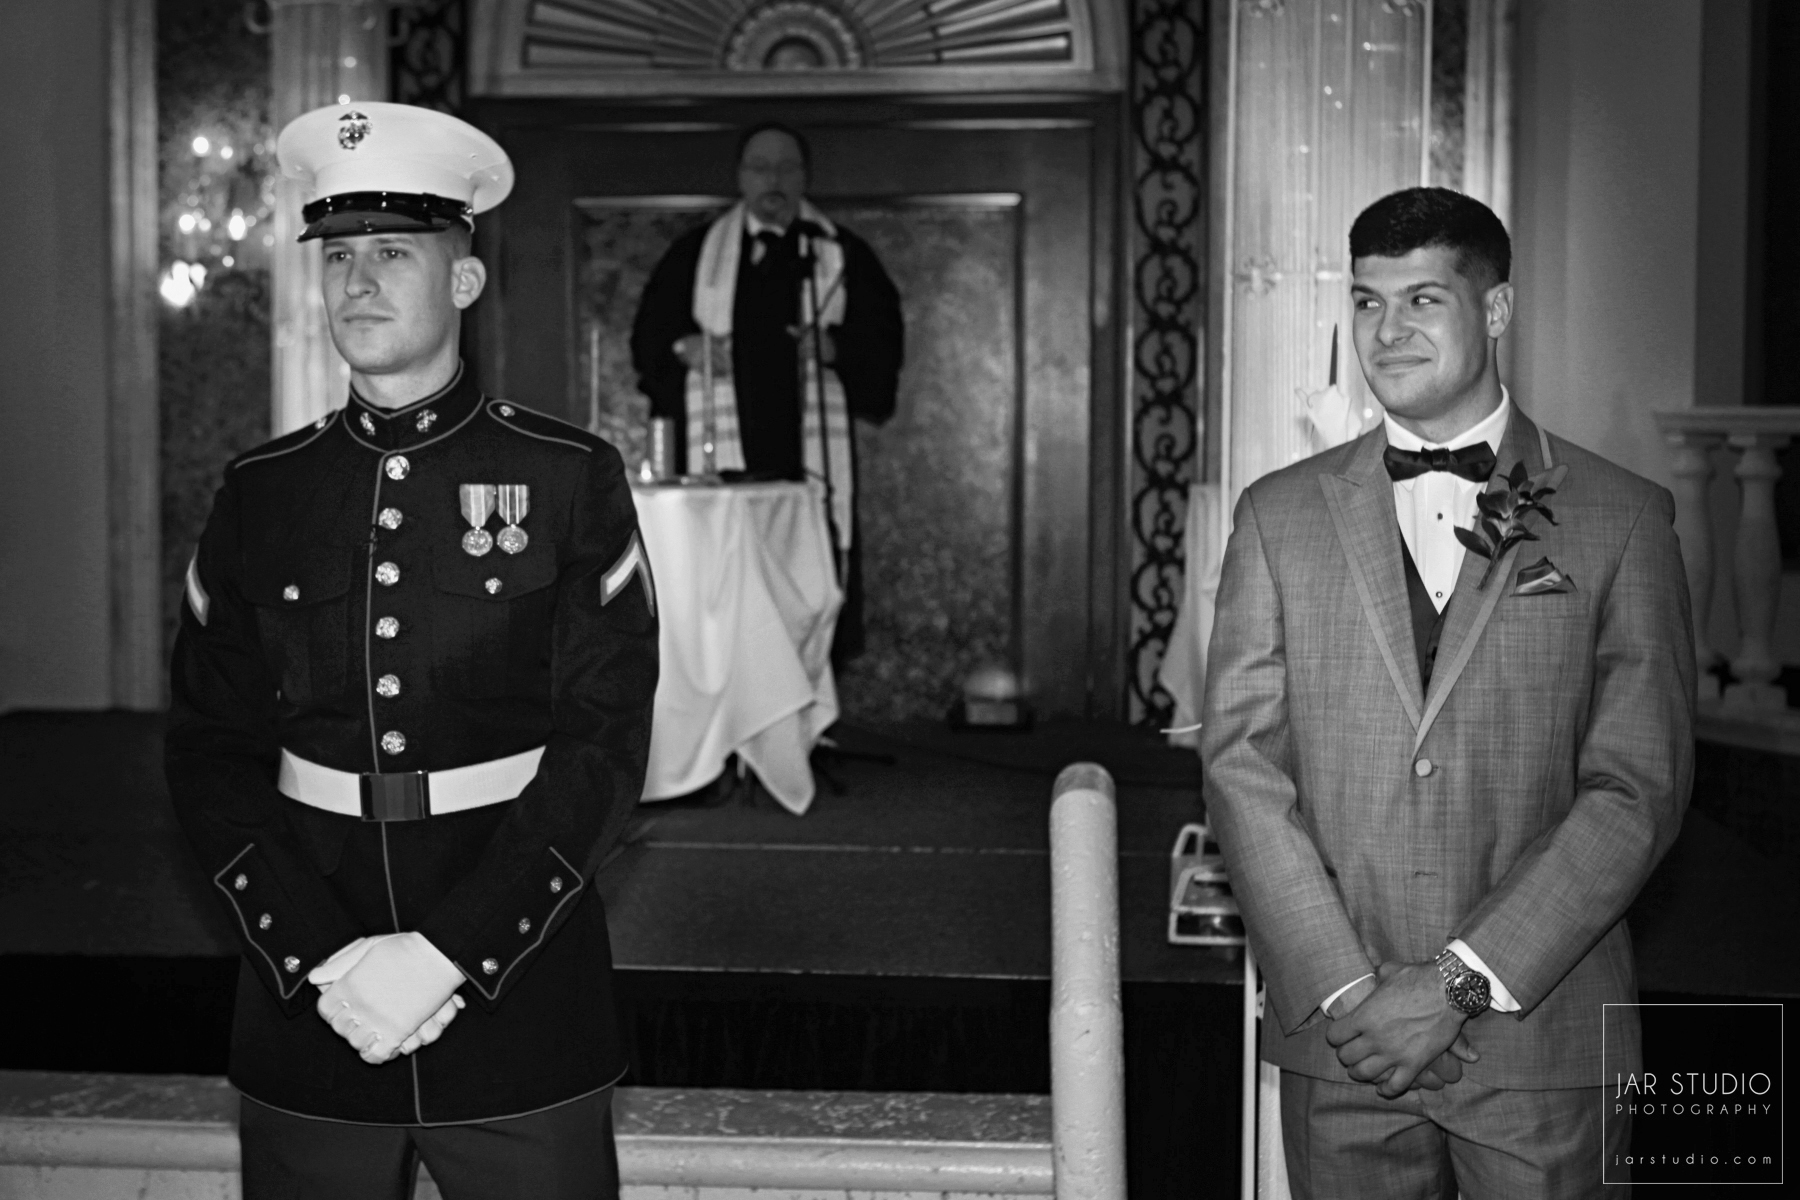 11-marine-groom-waiting-for-bride-moment-fl-jewish-wedding-photographer.JPG